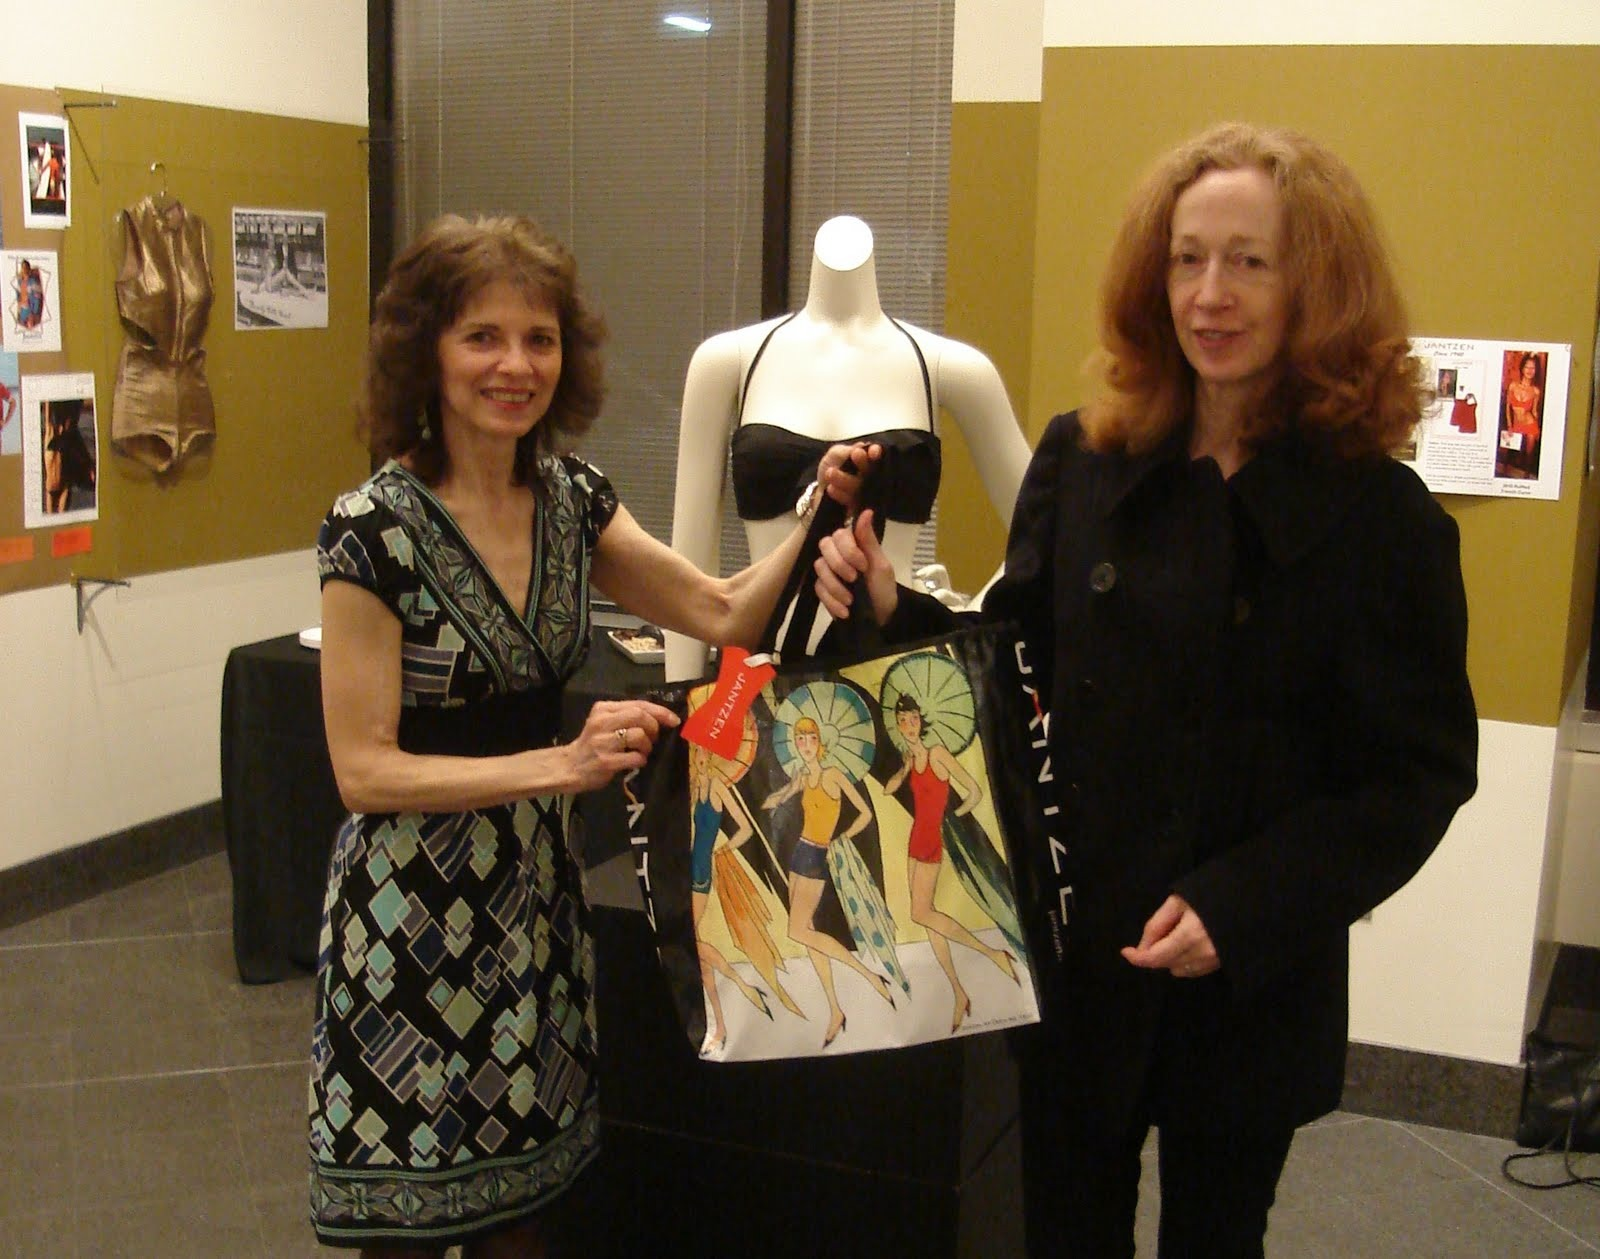 100 Years of Jantzen exhibit co-curators Carol Alhadeff and Annin Barrett at The Art Institute of Portland gallery.